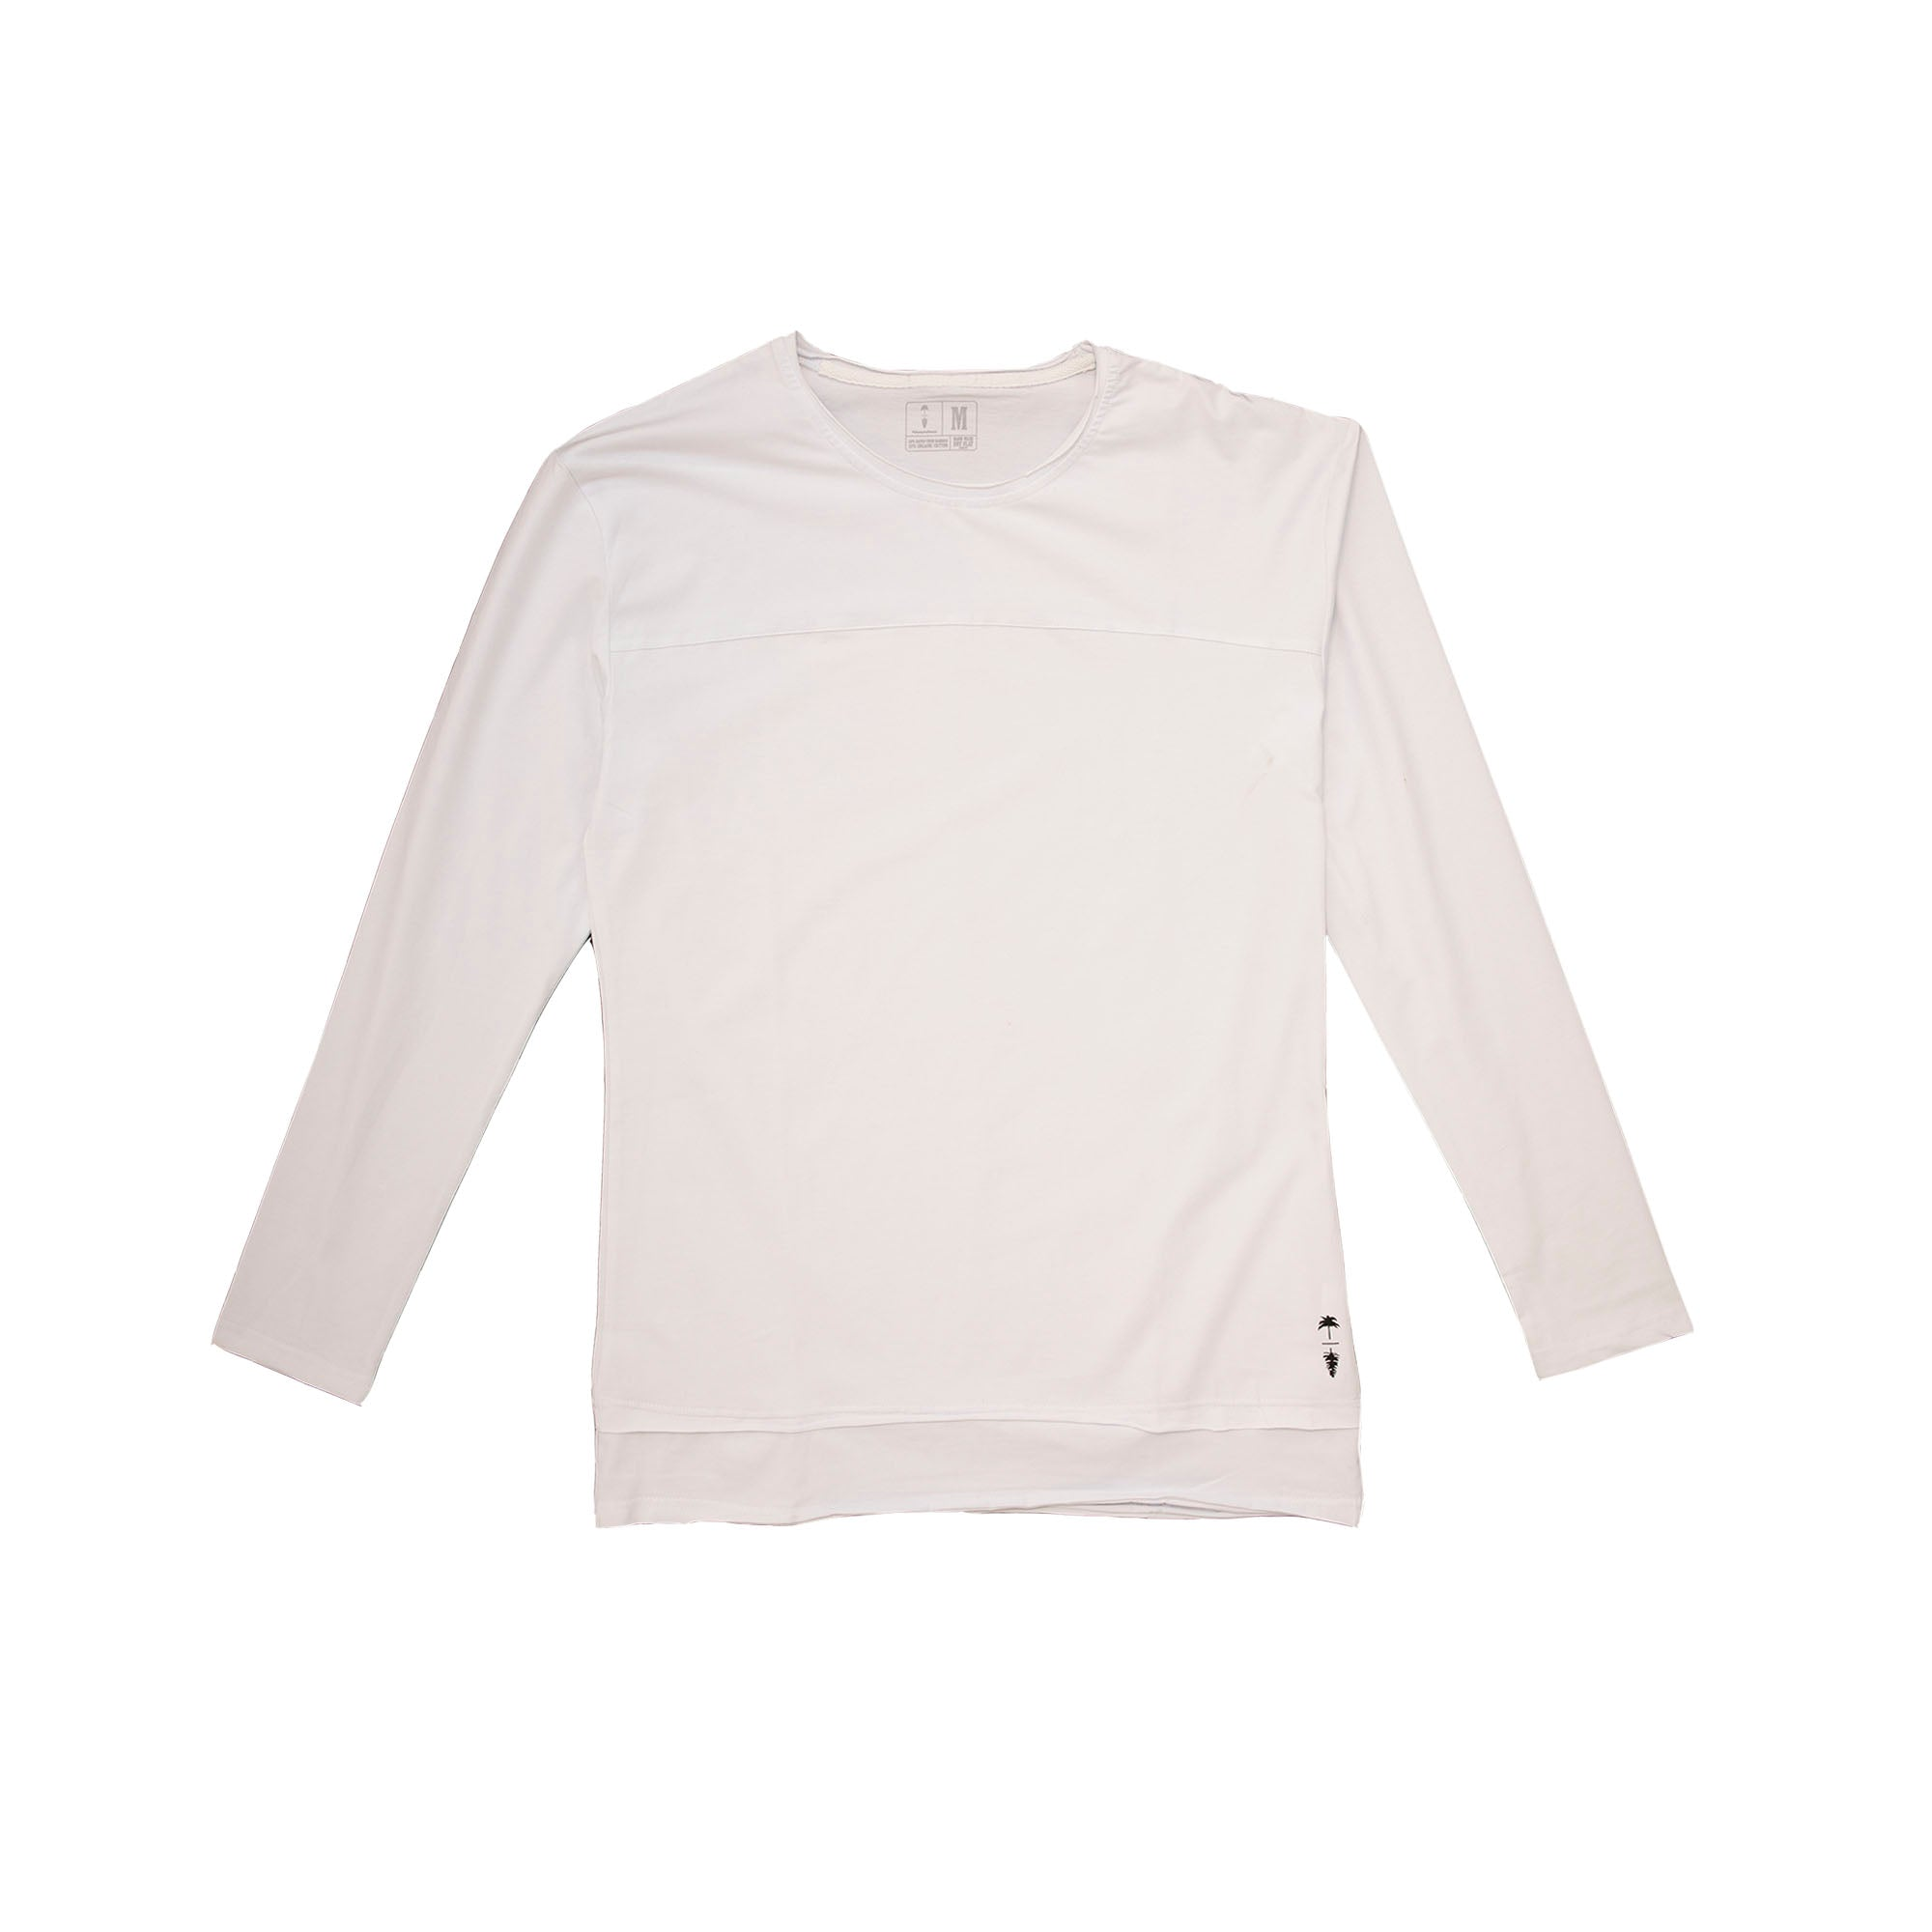 Premium Long Sleeve Drop Shirt